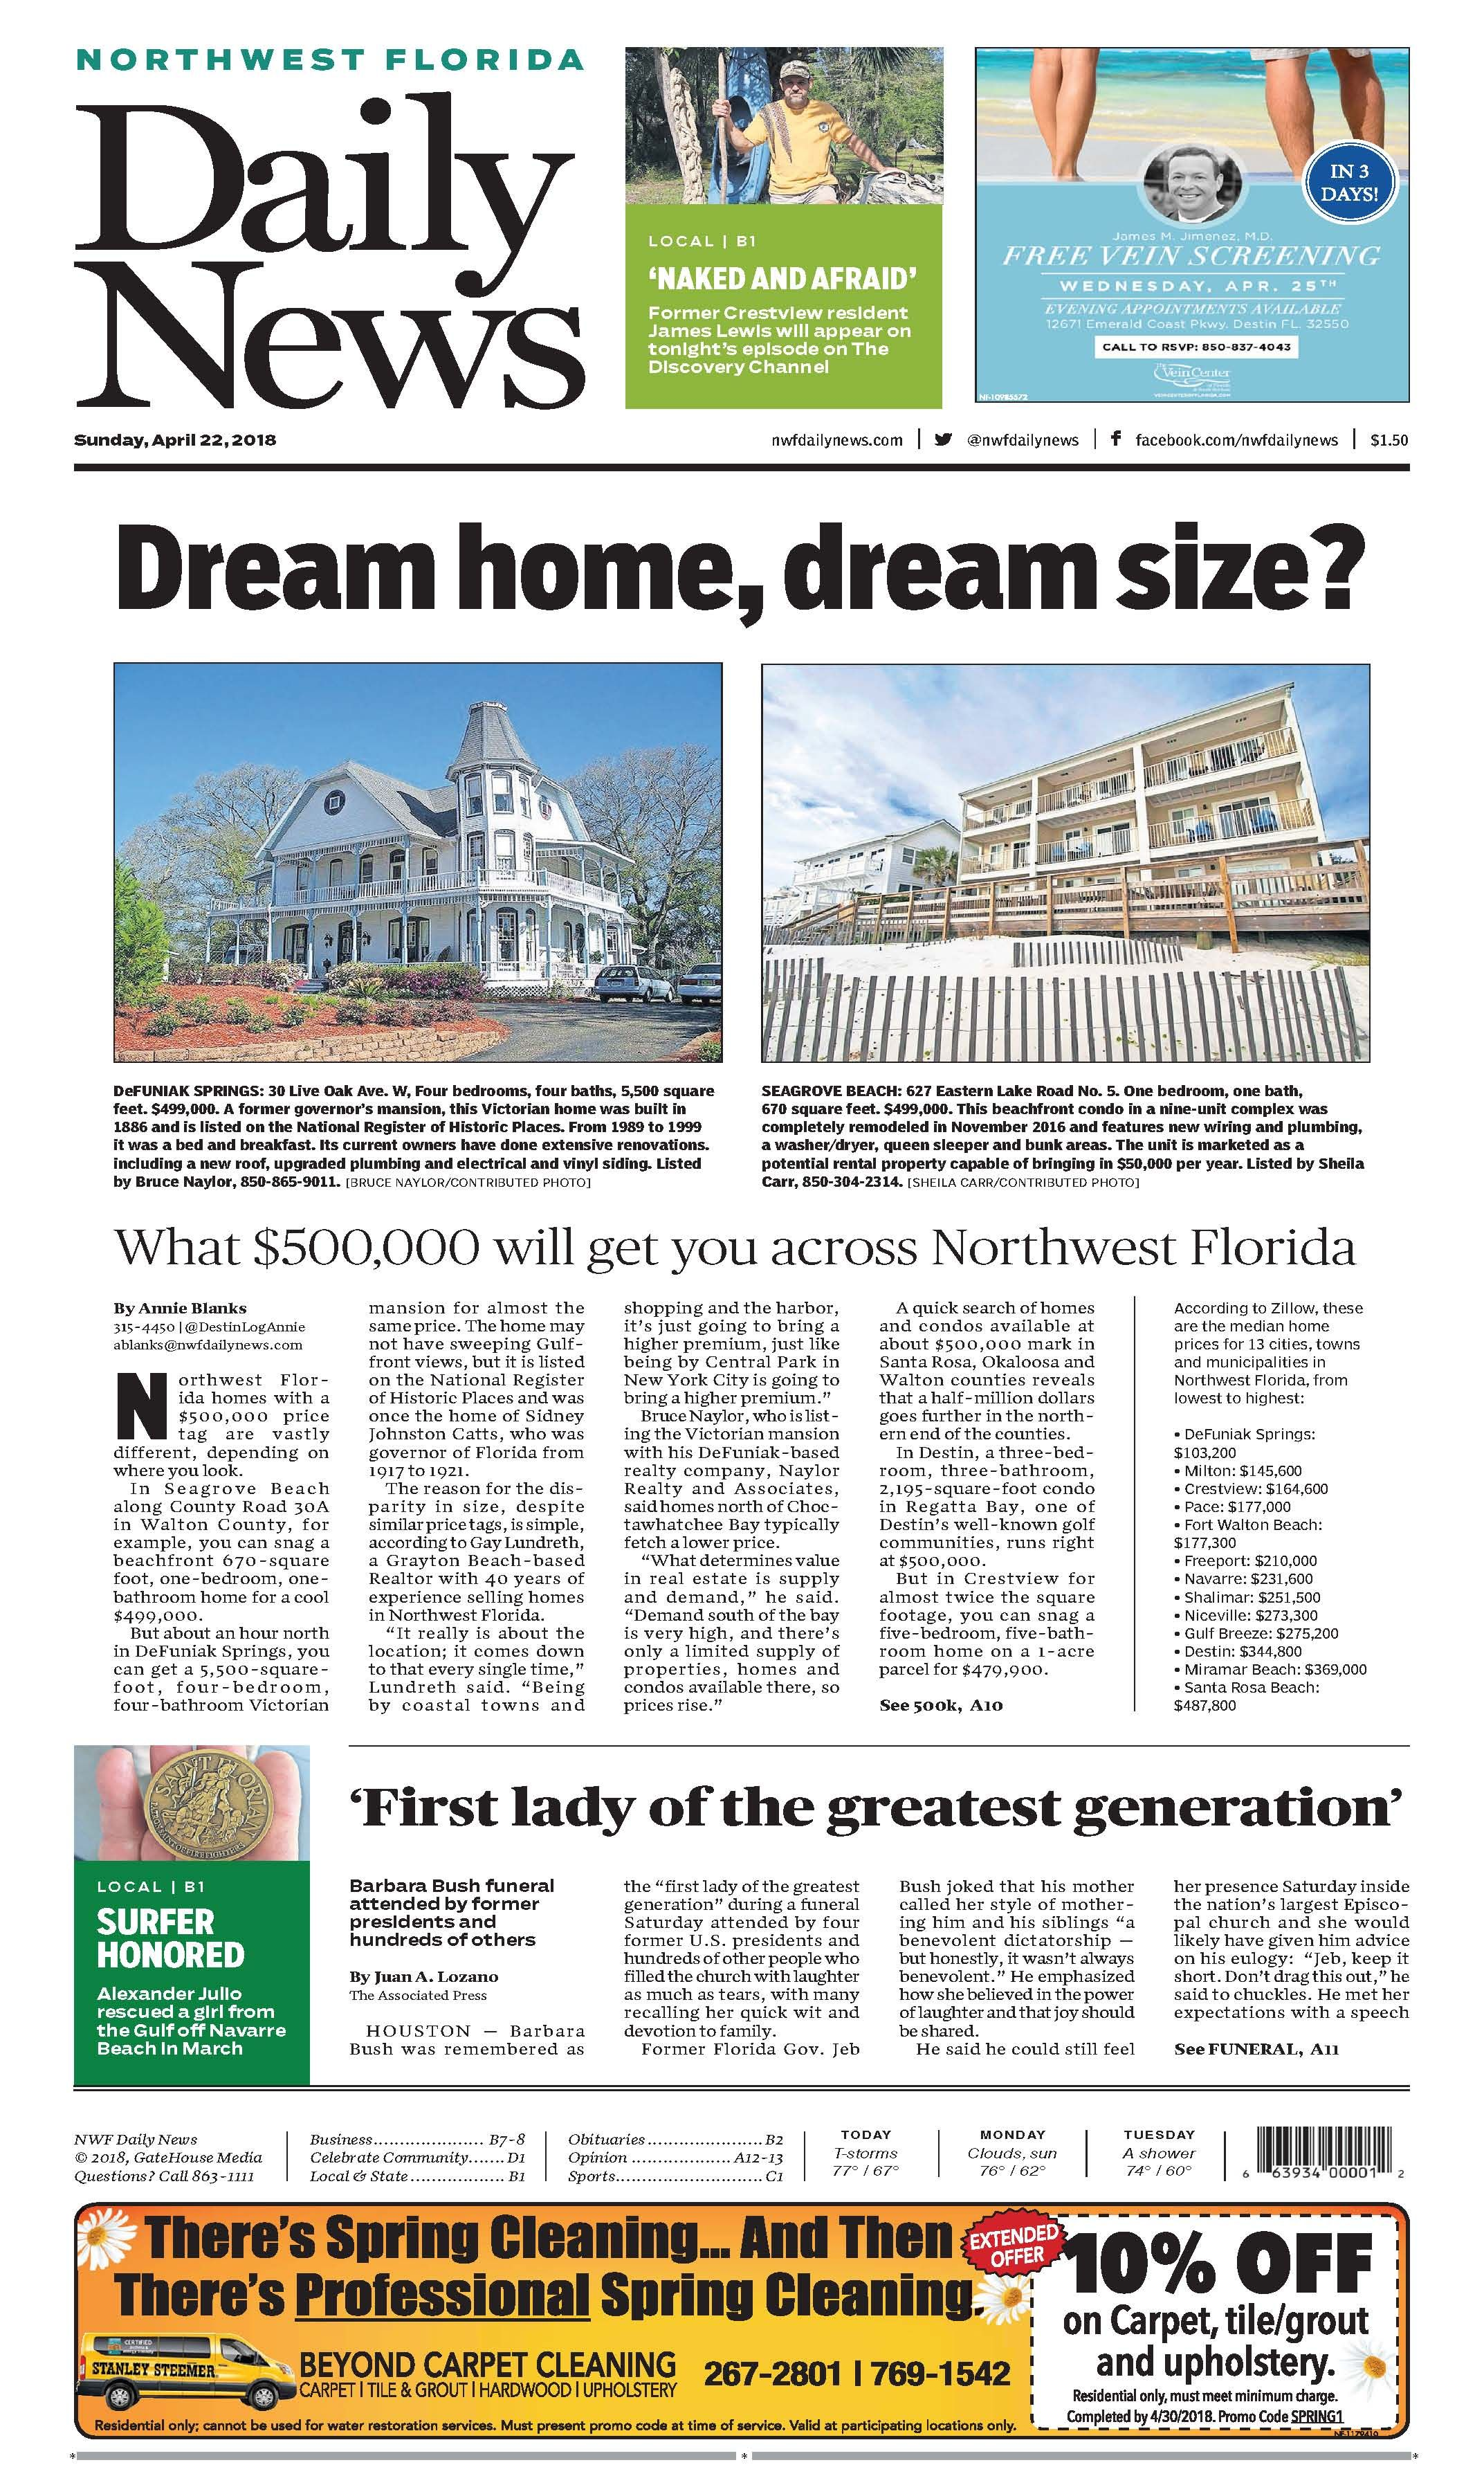 The April 22 2018 Cover Of The Northwest Florida Daily News What 500 000 Will Get You Across Northwest Florida Fort Walton Beach North West Florida